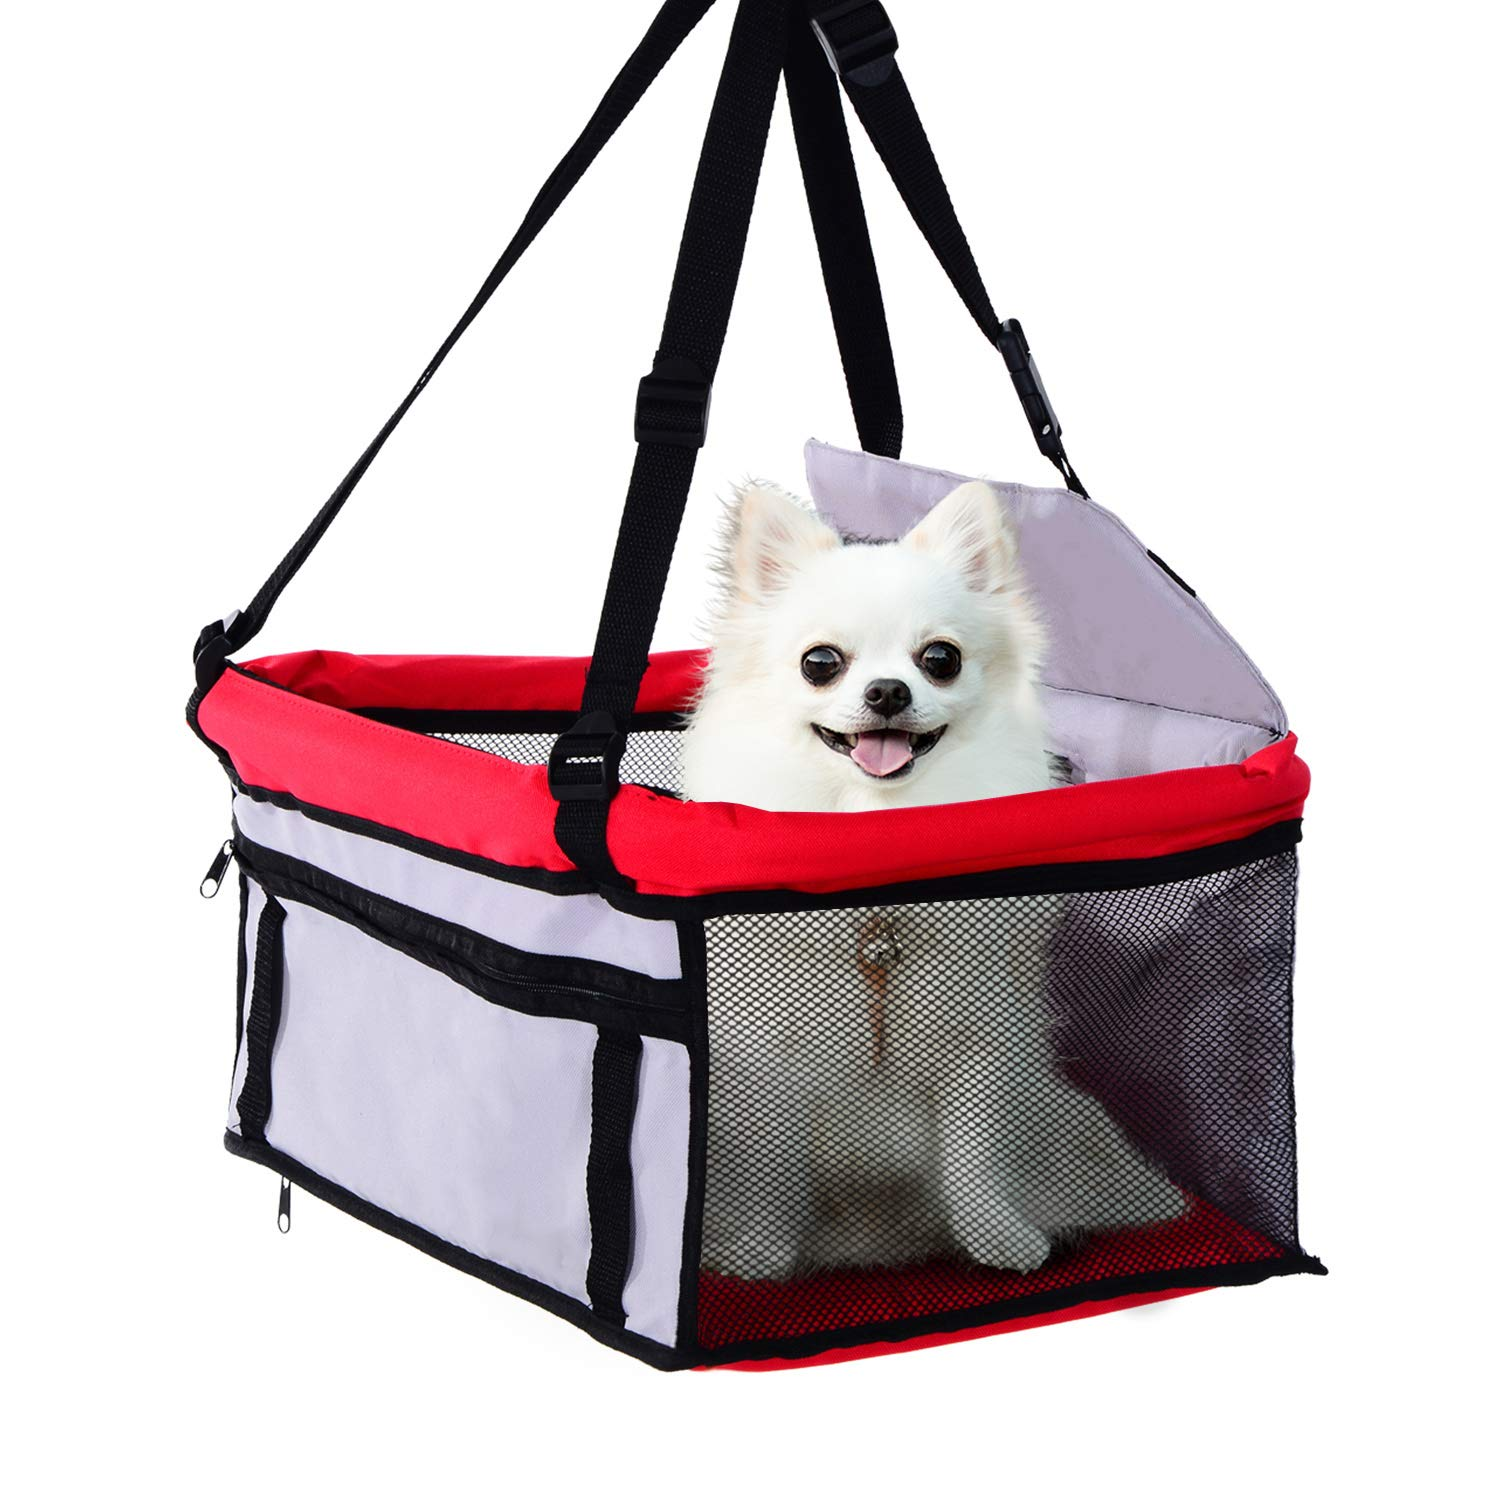 PawHut Dog Cat Puppy Pet Car Booster Seat Travel Carrier Bag Cage Tote Kennel Playpen Easy Folding